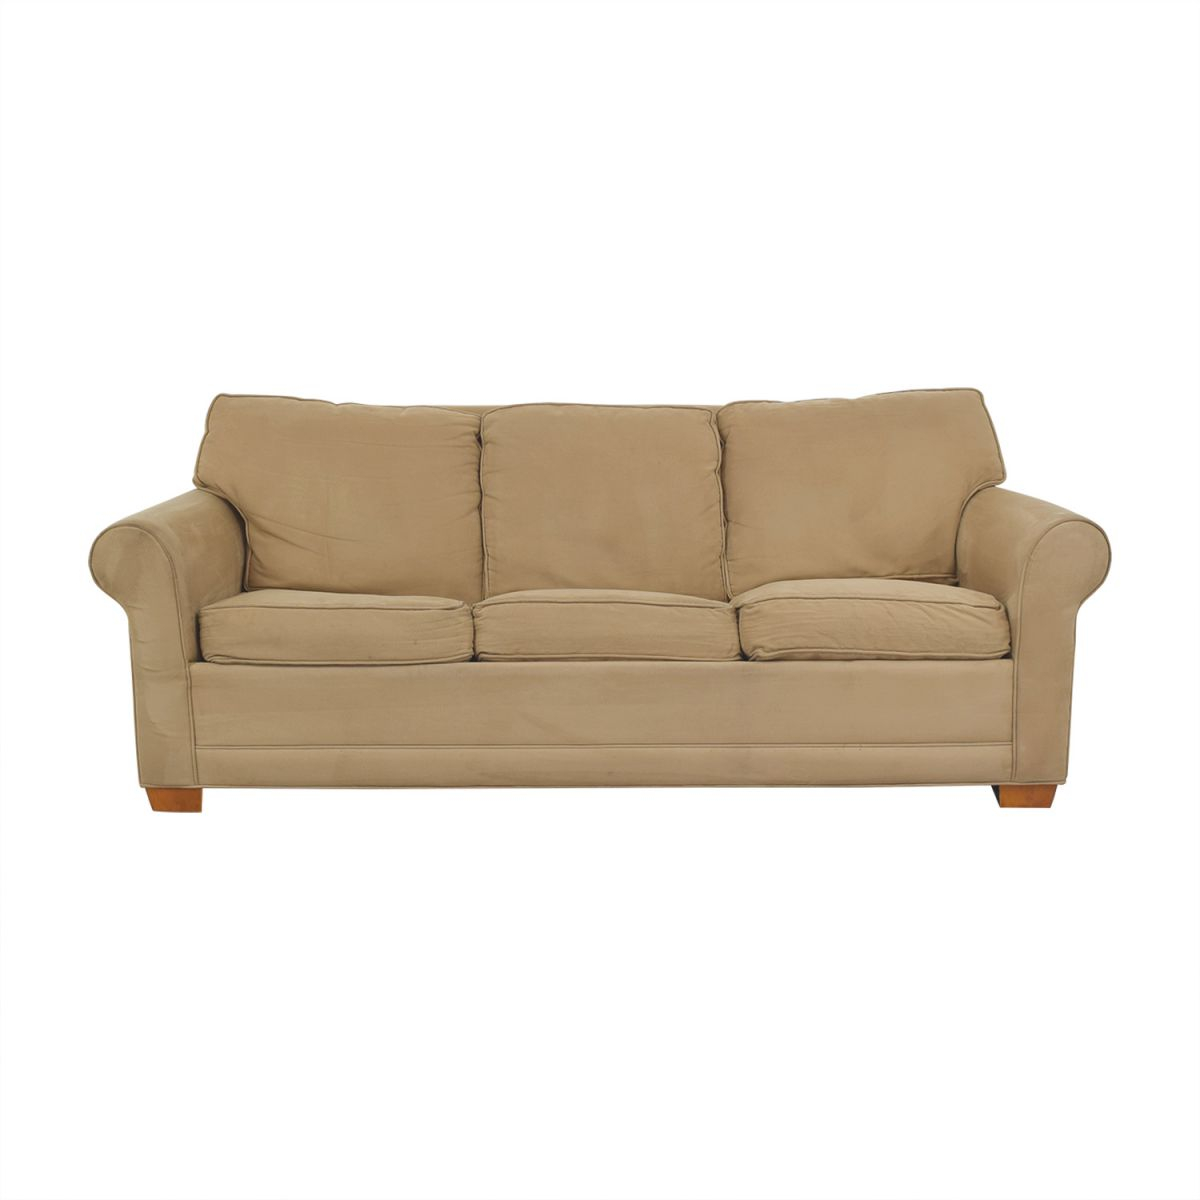 75% Off - Raymour & Flanigan Raymour & Flanigan Sleeper Sofa / Sofas intended for Lovely Raymour And Flanigan Sleeper Sofa